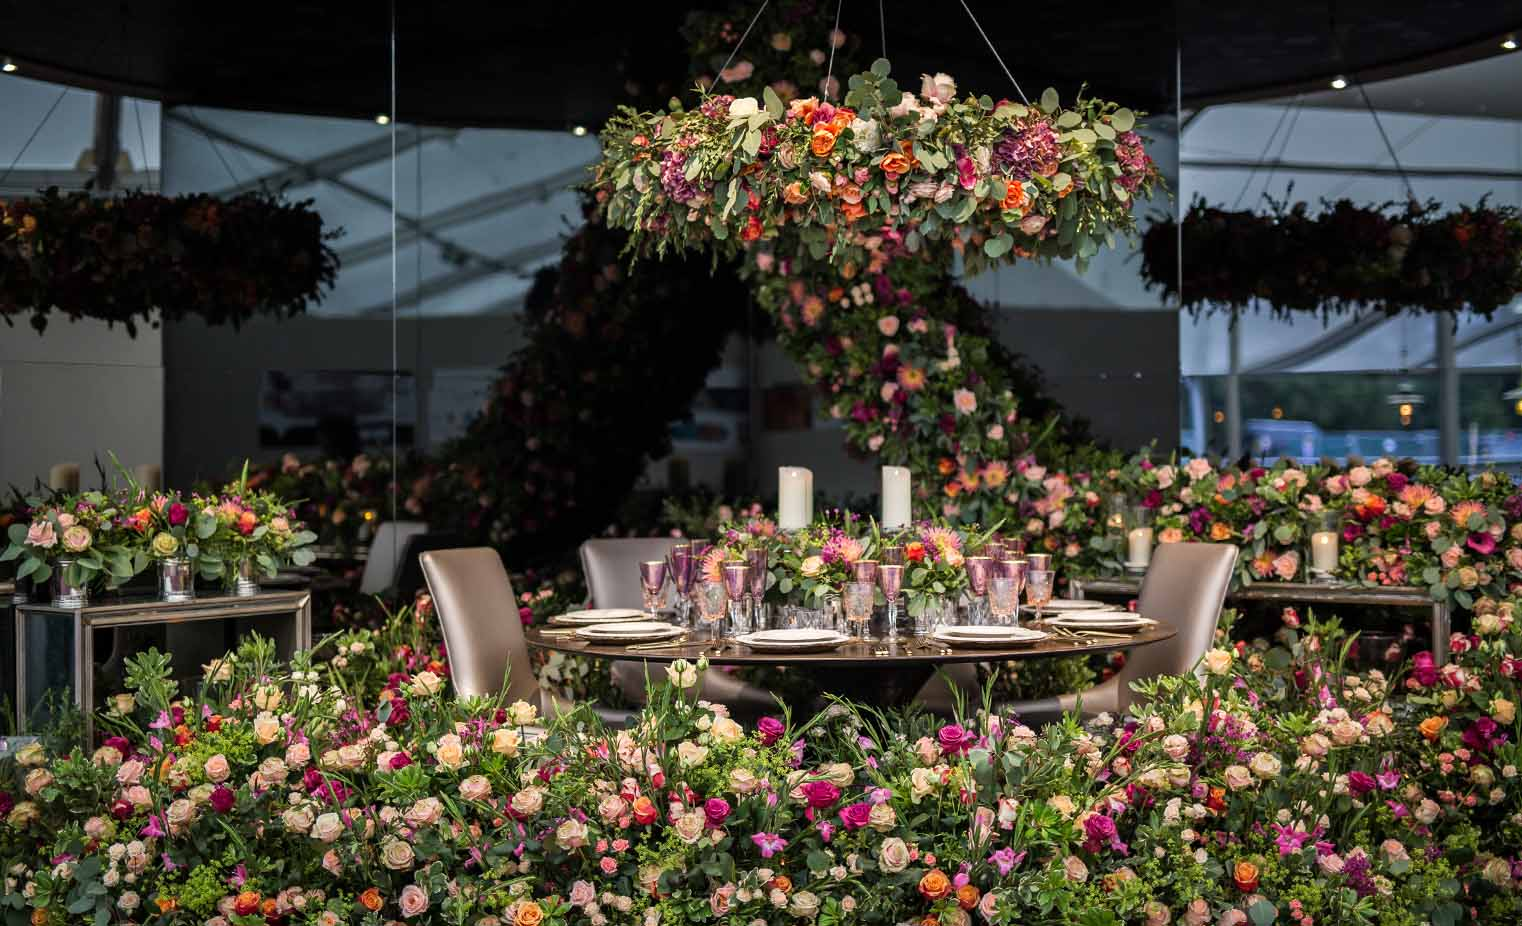 Larry Walshe Floral Design - A reflection of beauty at Decorex